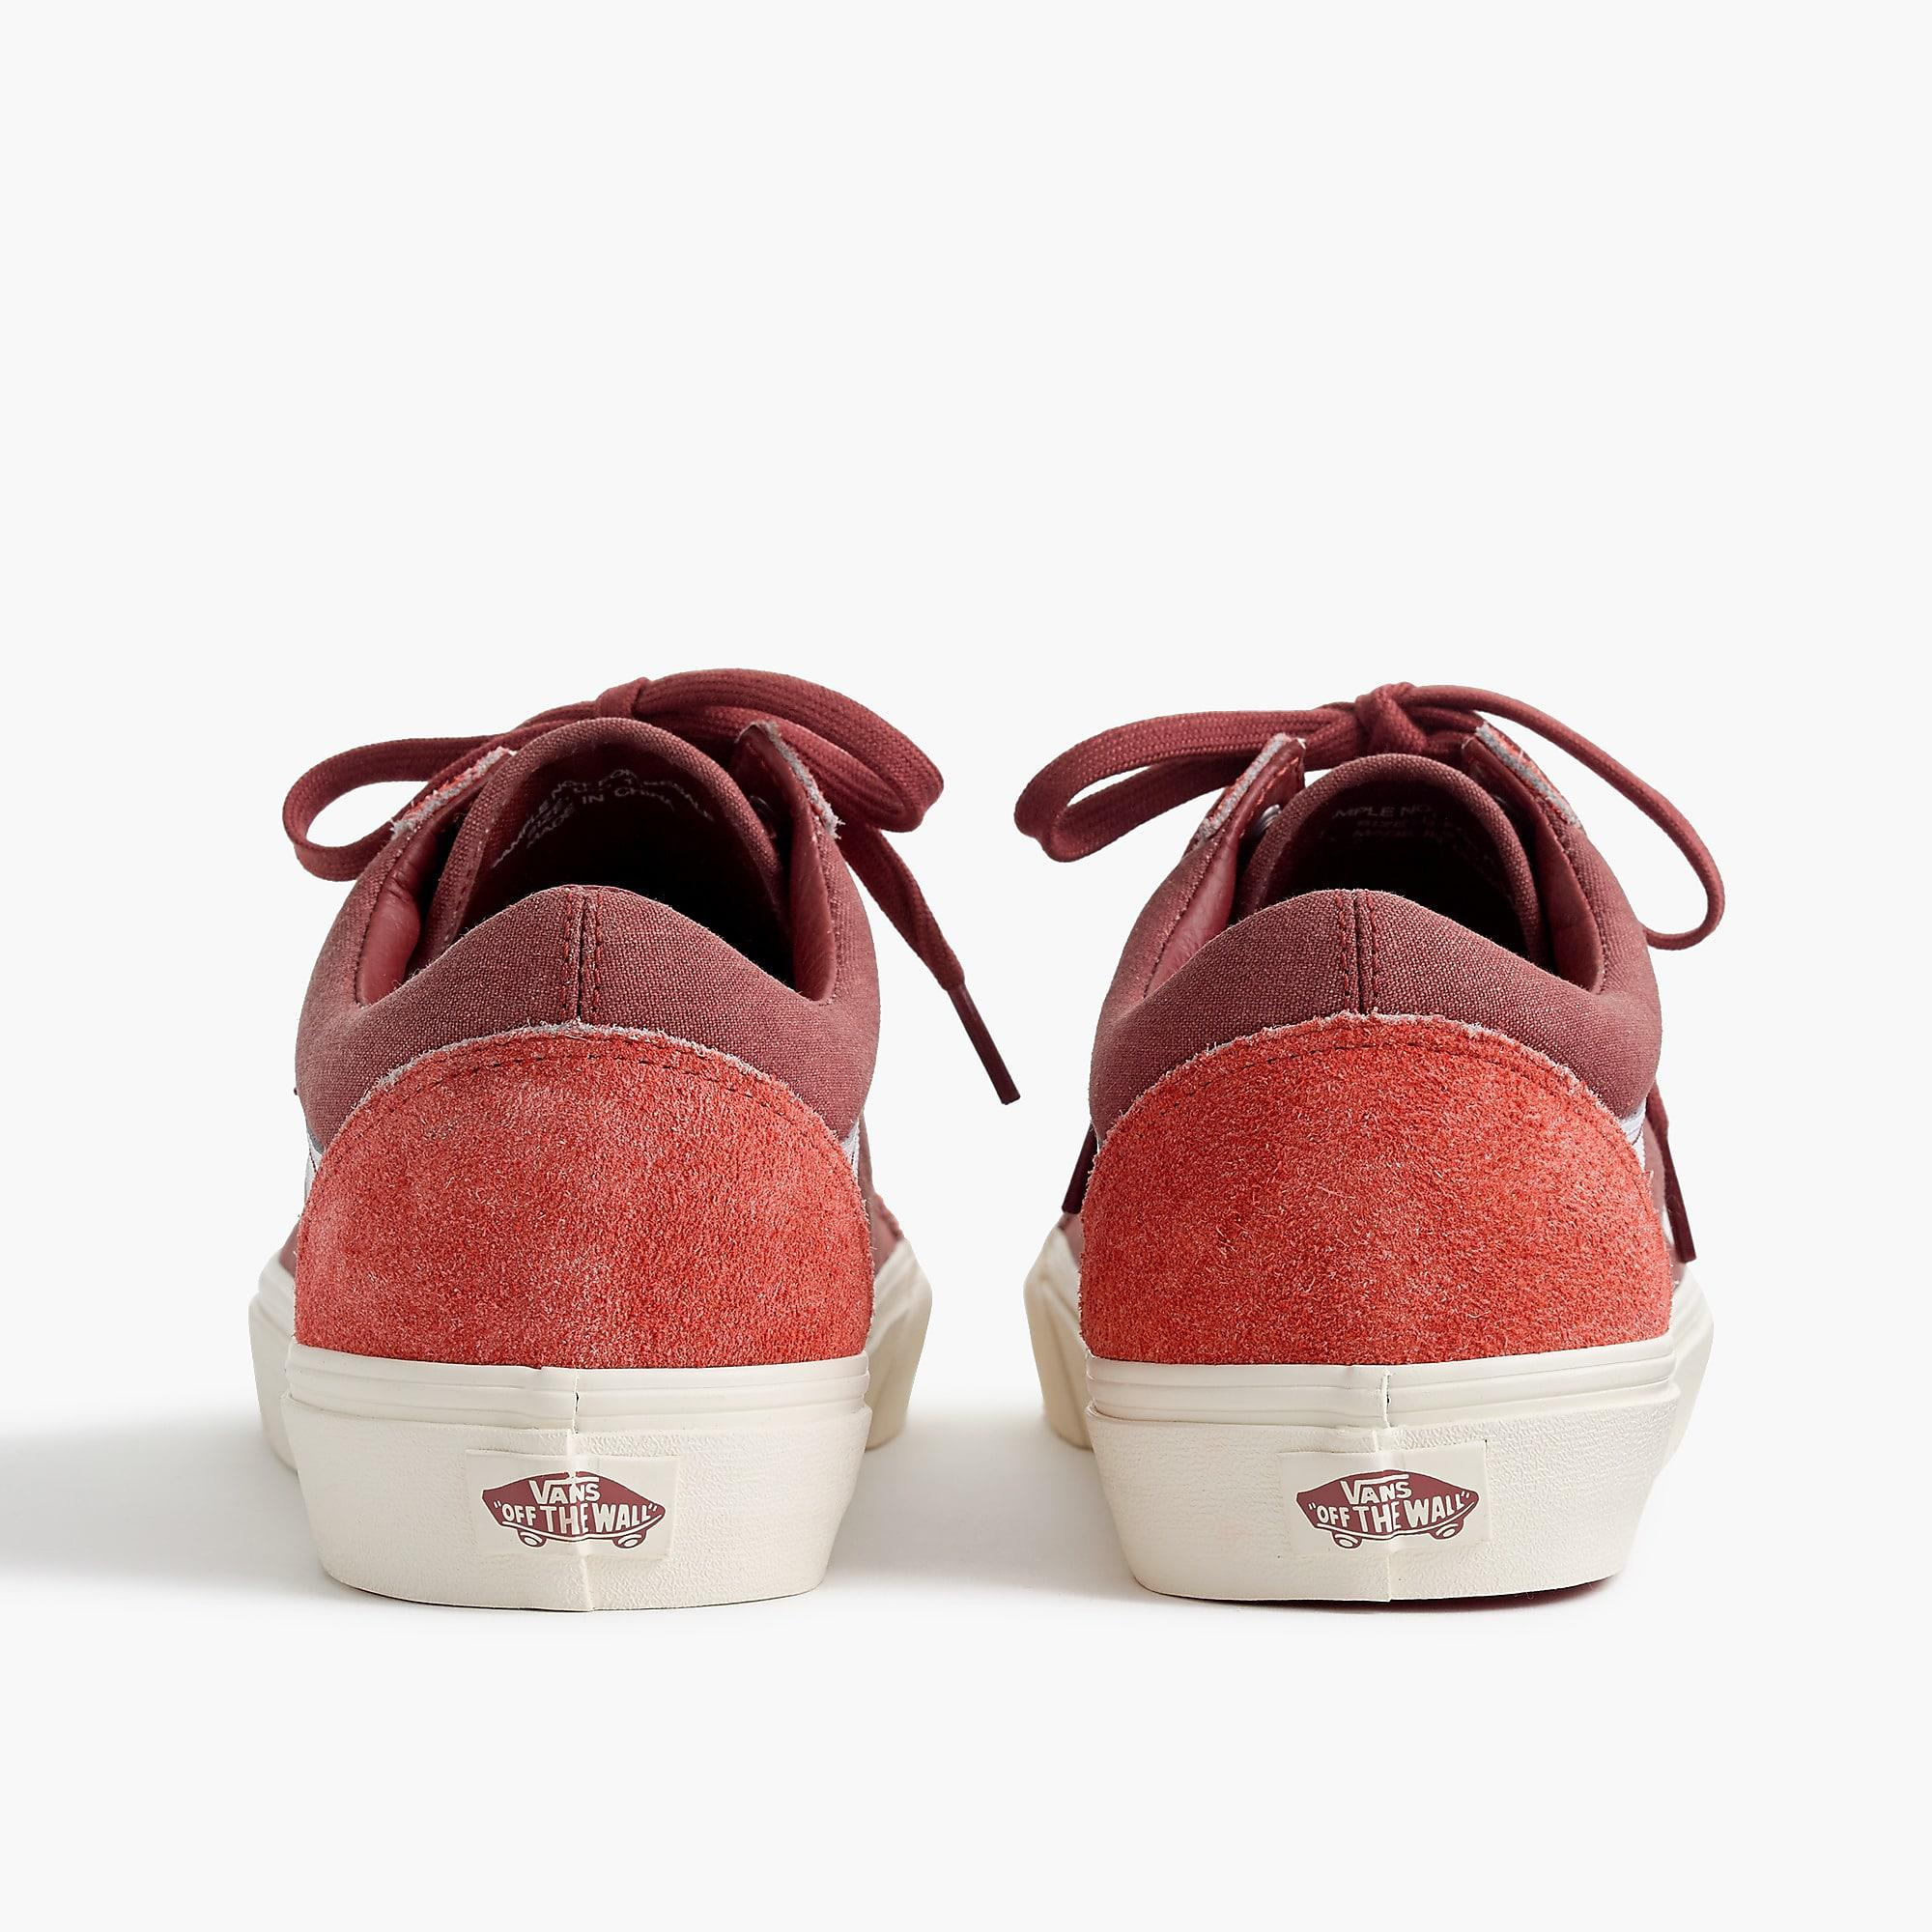 8a0f6b70c653 Lyst - Vans Old Skool Sneakers In Washed Canvas in Red for Men